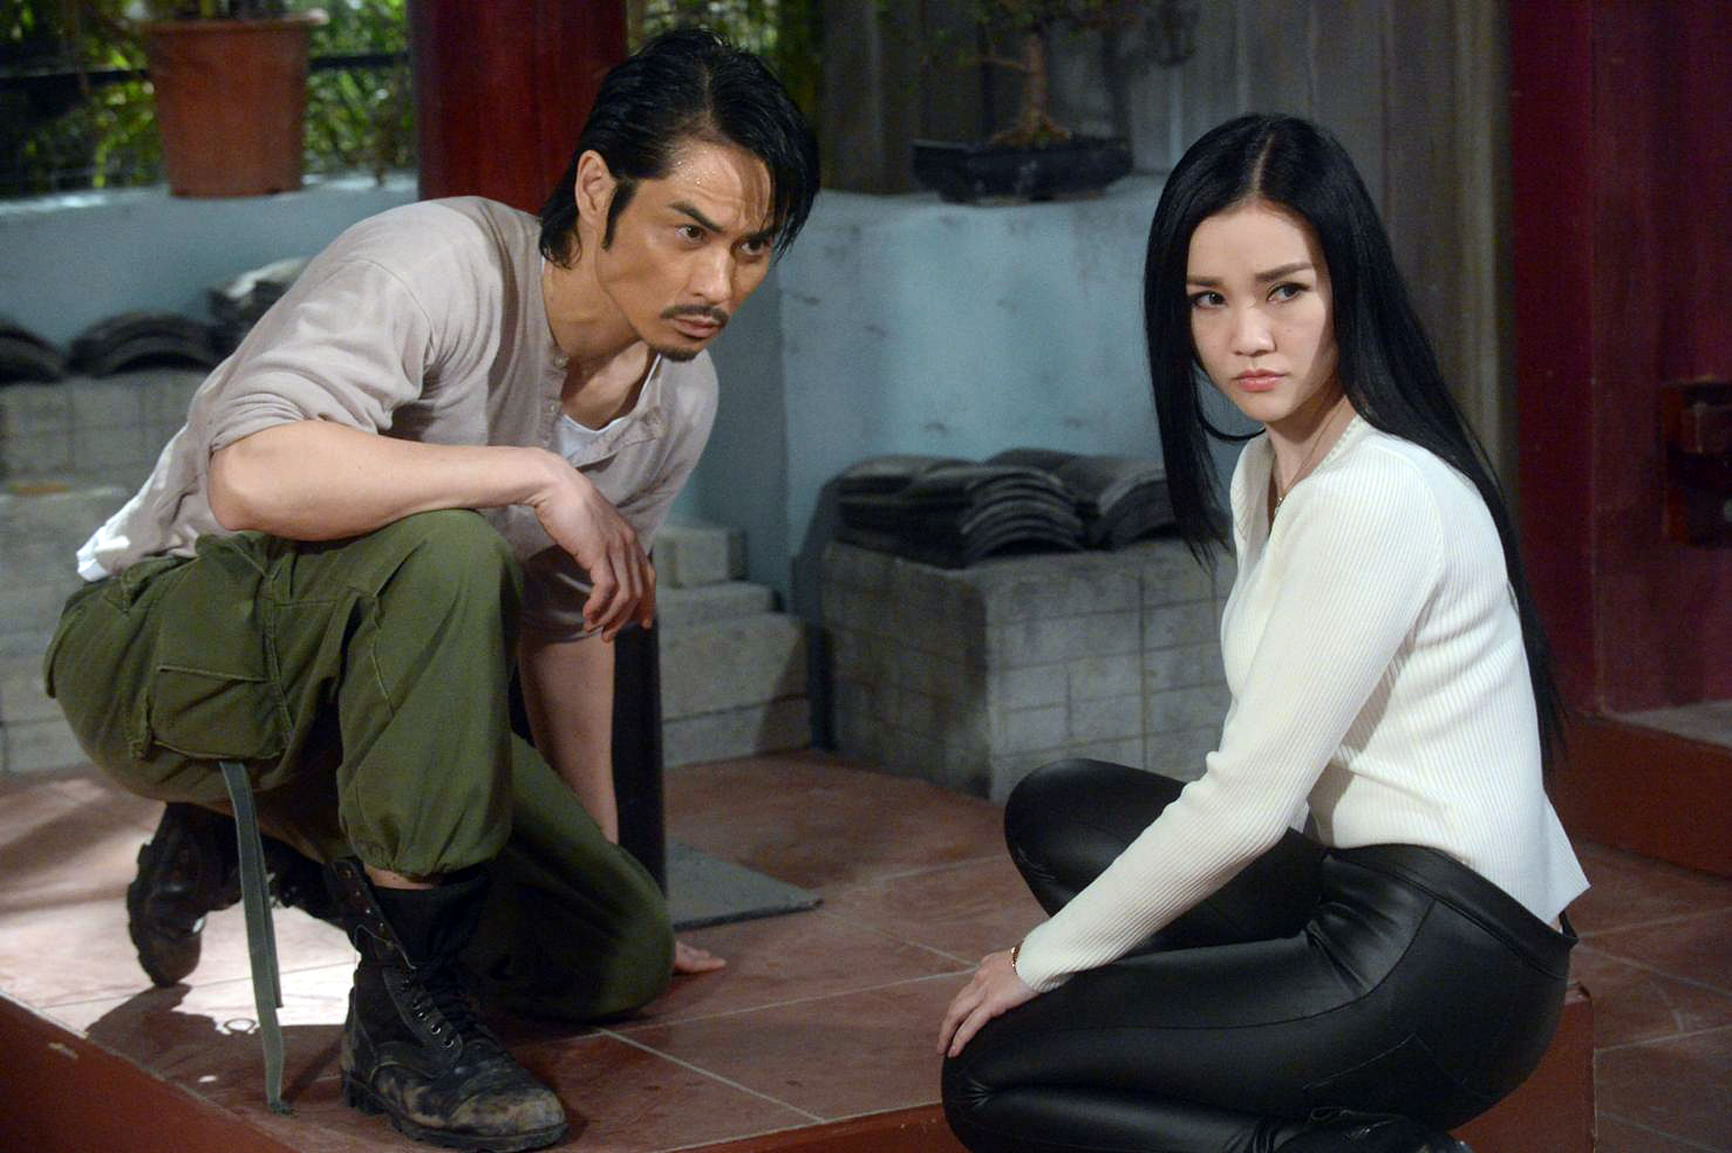 TV reviews: HK drama Blue Veins a seriously cute action